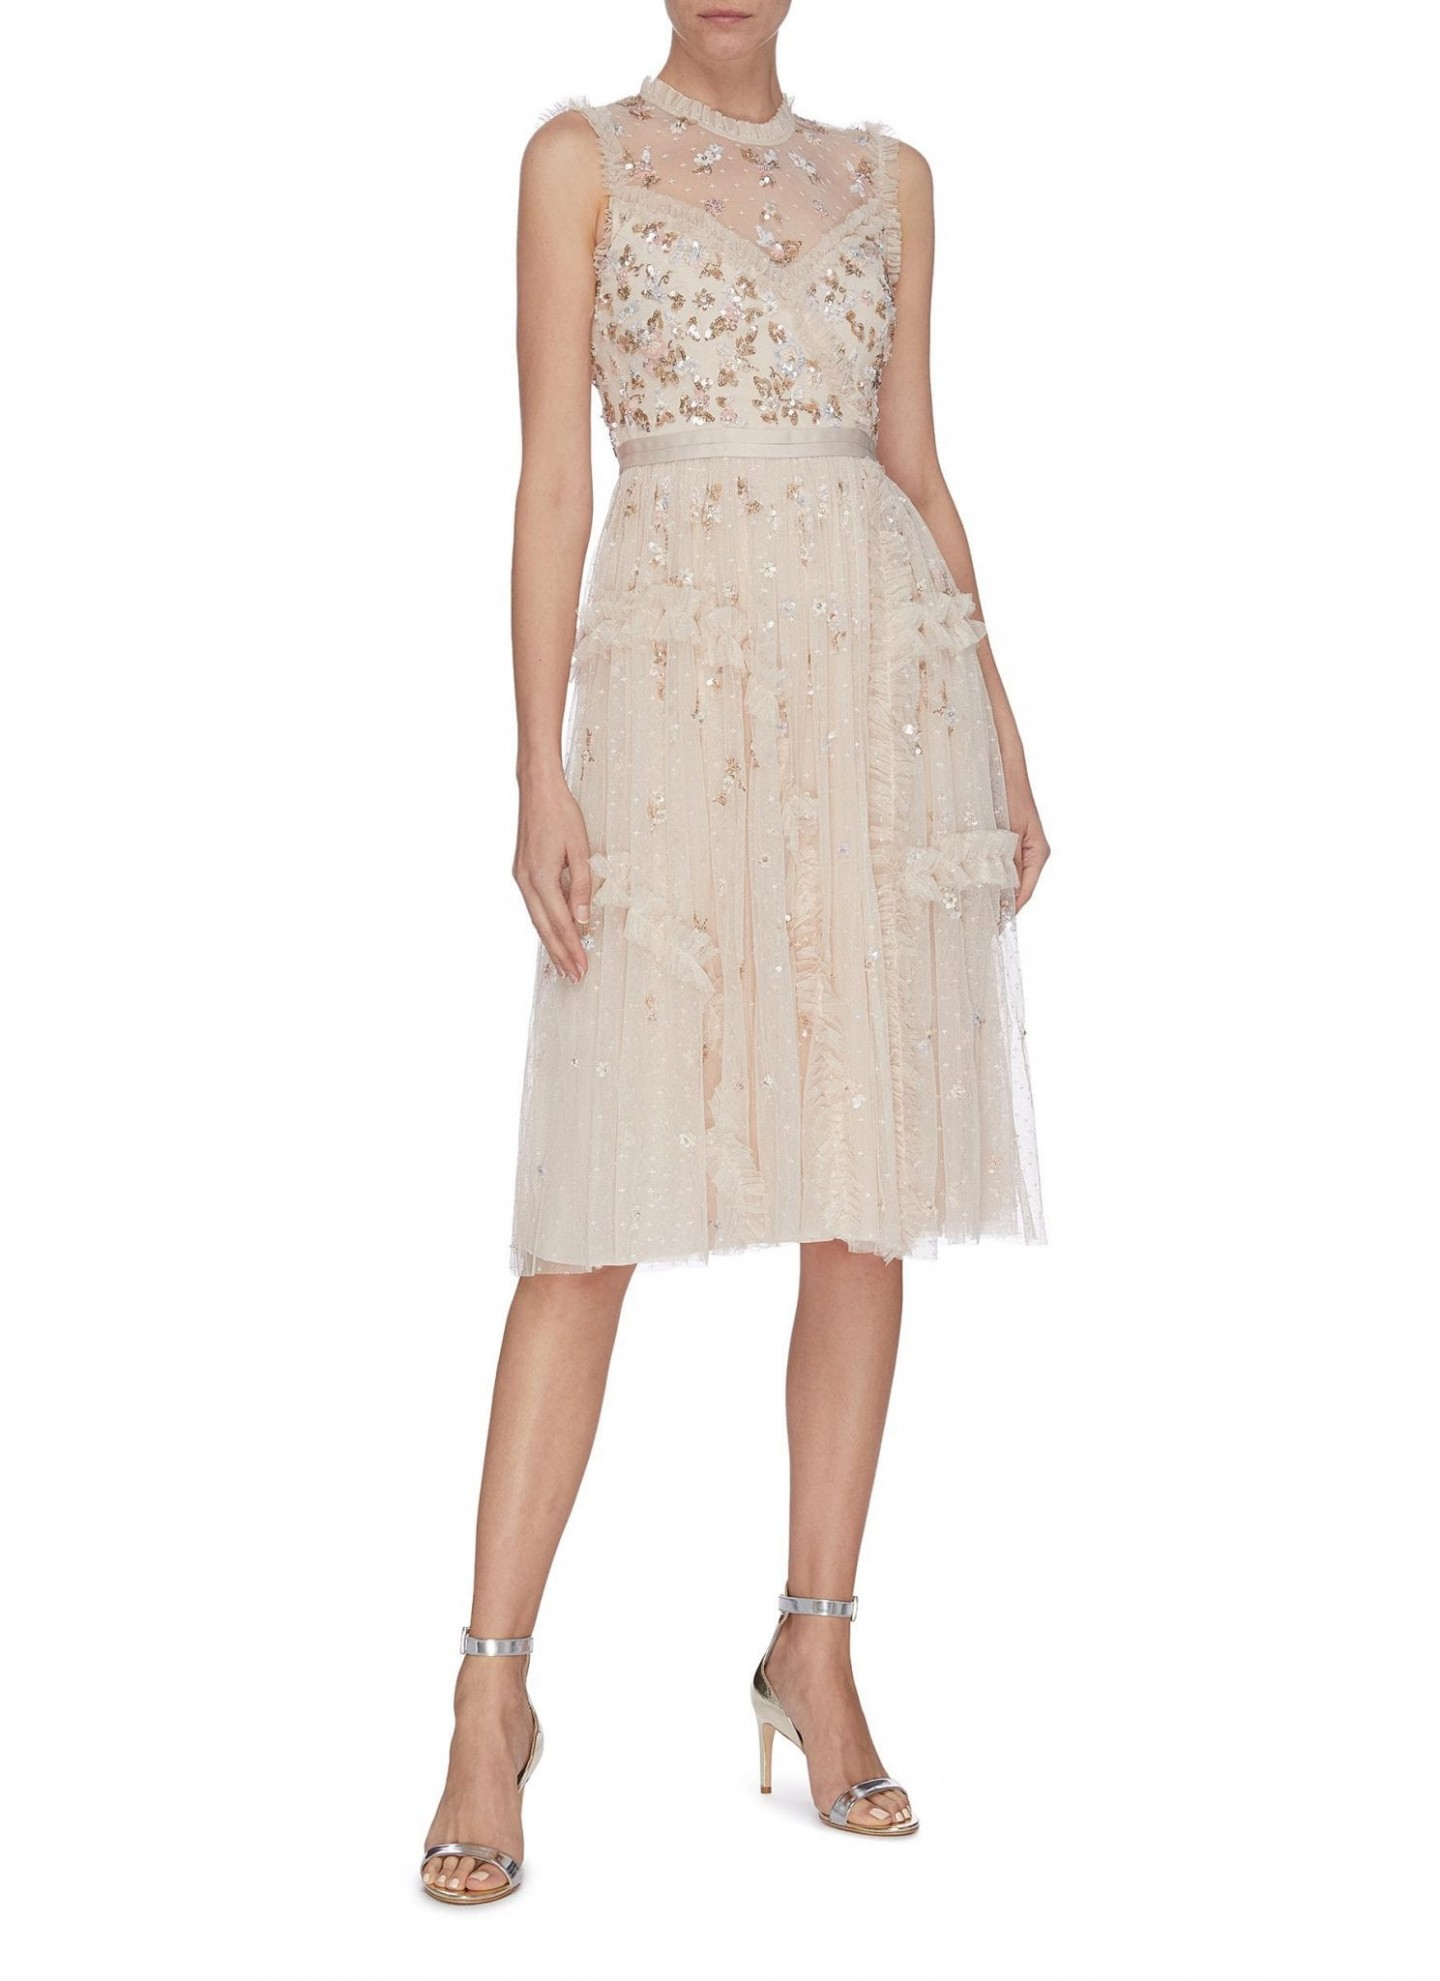 NEEDLE & THREAD Sequin Embroidered Floral Sheer Tulle Dress